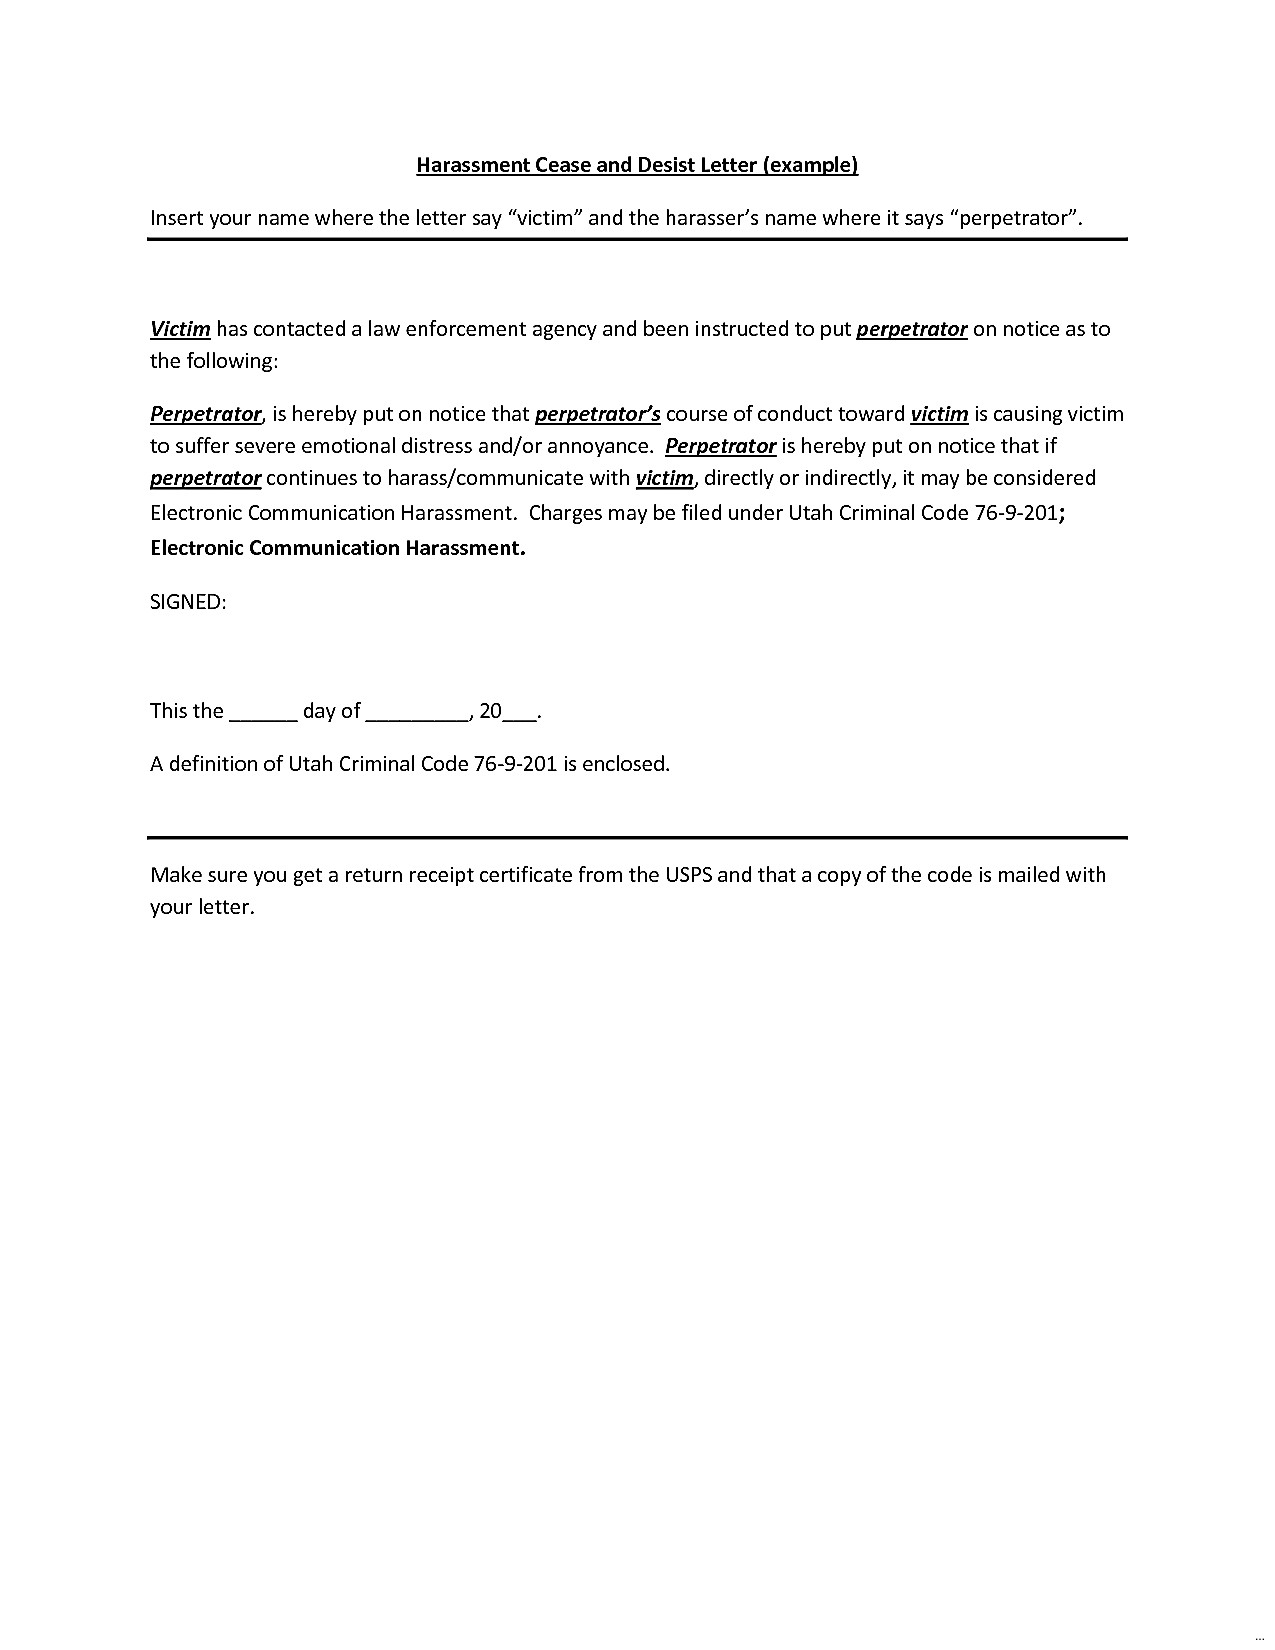 Free Cease and Desist Letter Template for Harassment - Cease and Desist Letter Template Itn Gctu Magnificent Harassment